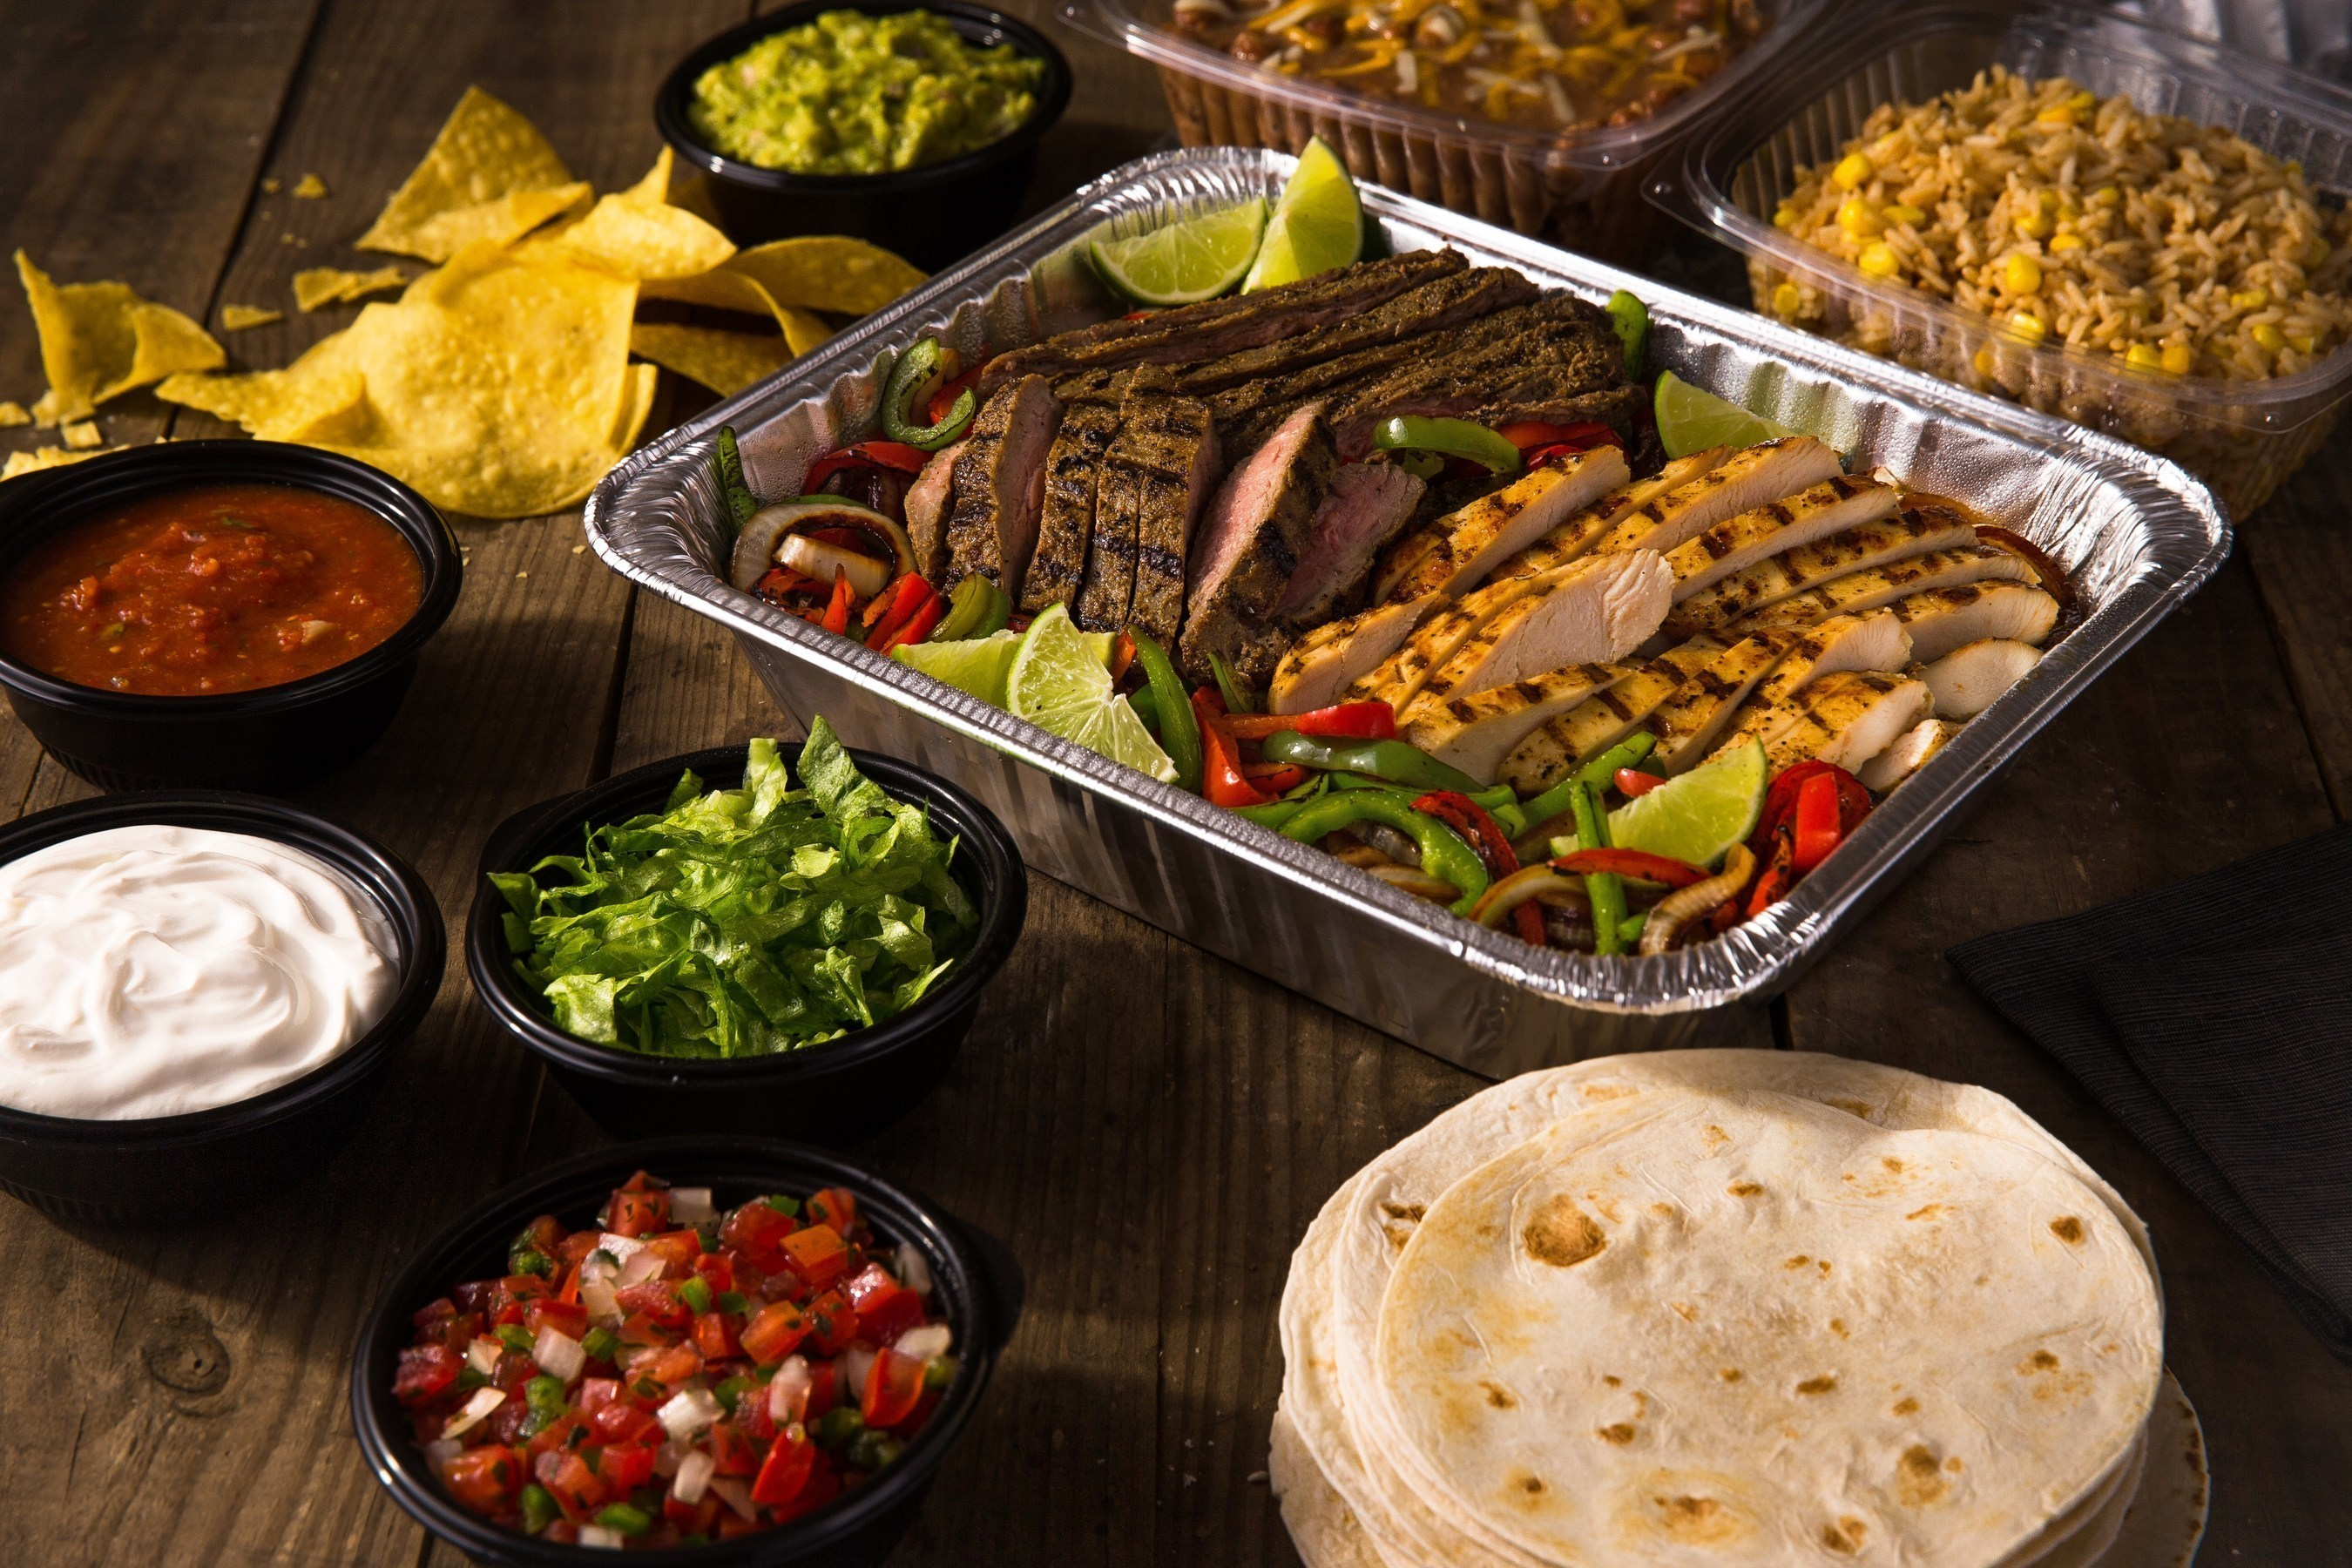 On the Border(R) is celebrating this holiday season by giving its guests 15 percent off all party platter and catering orders from Nov.12, 2016 through Jan. 1, 2017, at participating locations.